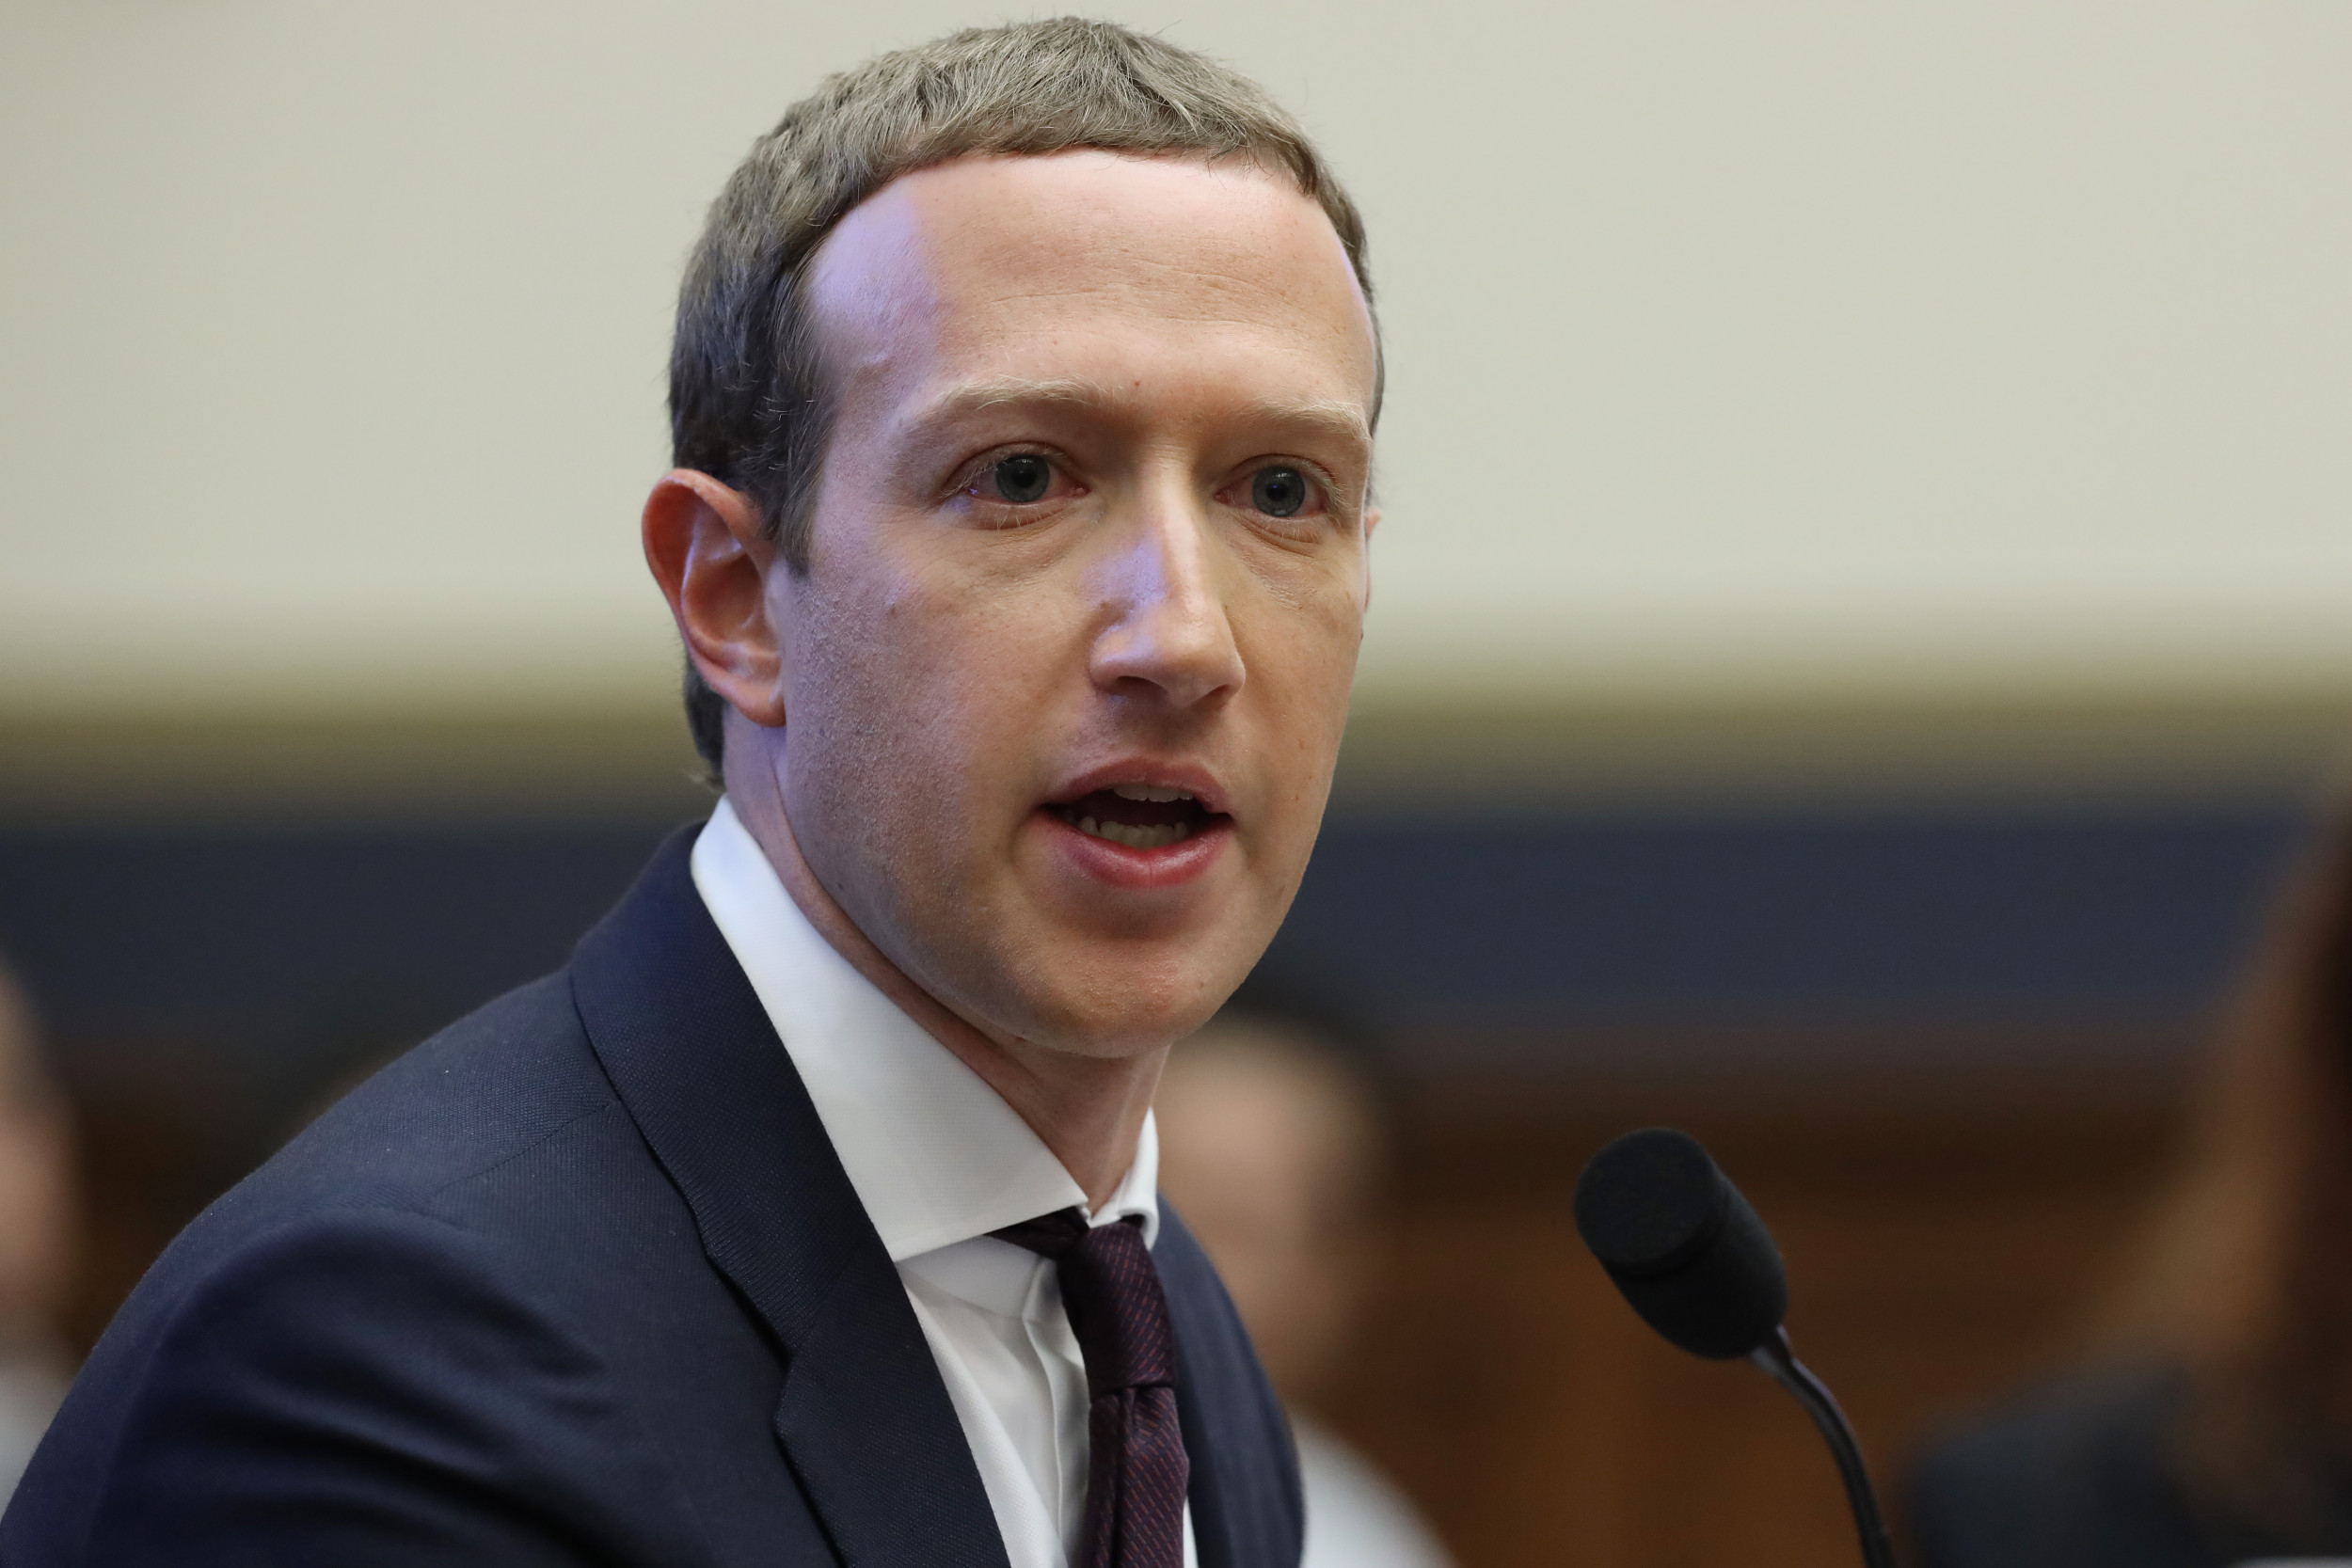 Facebook won't save us from fake news. We need to teach people to resist misinformation   Opinion